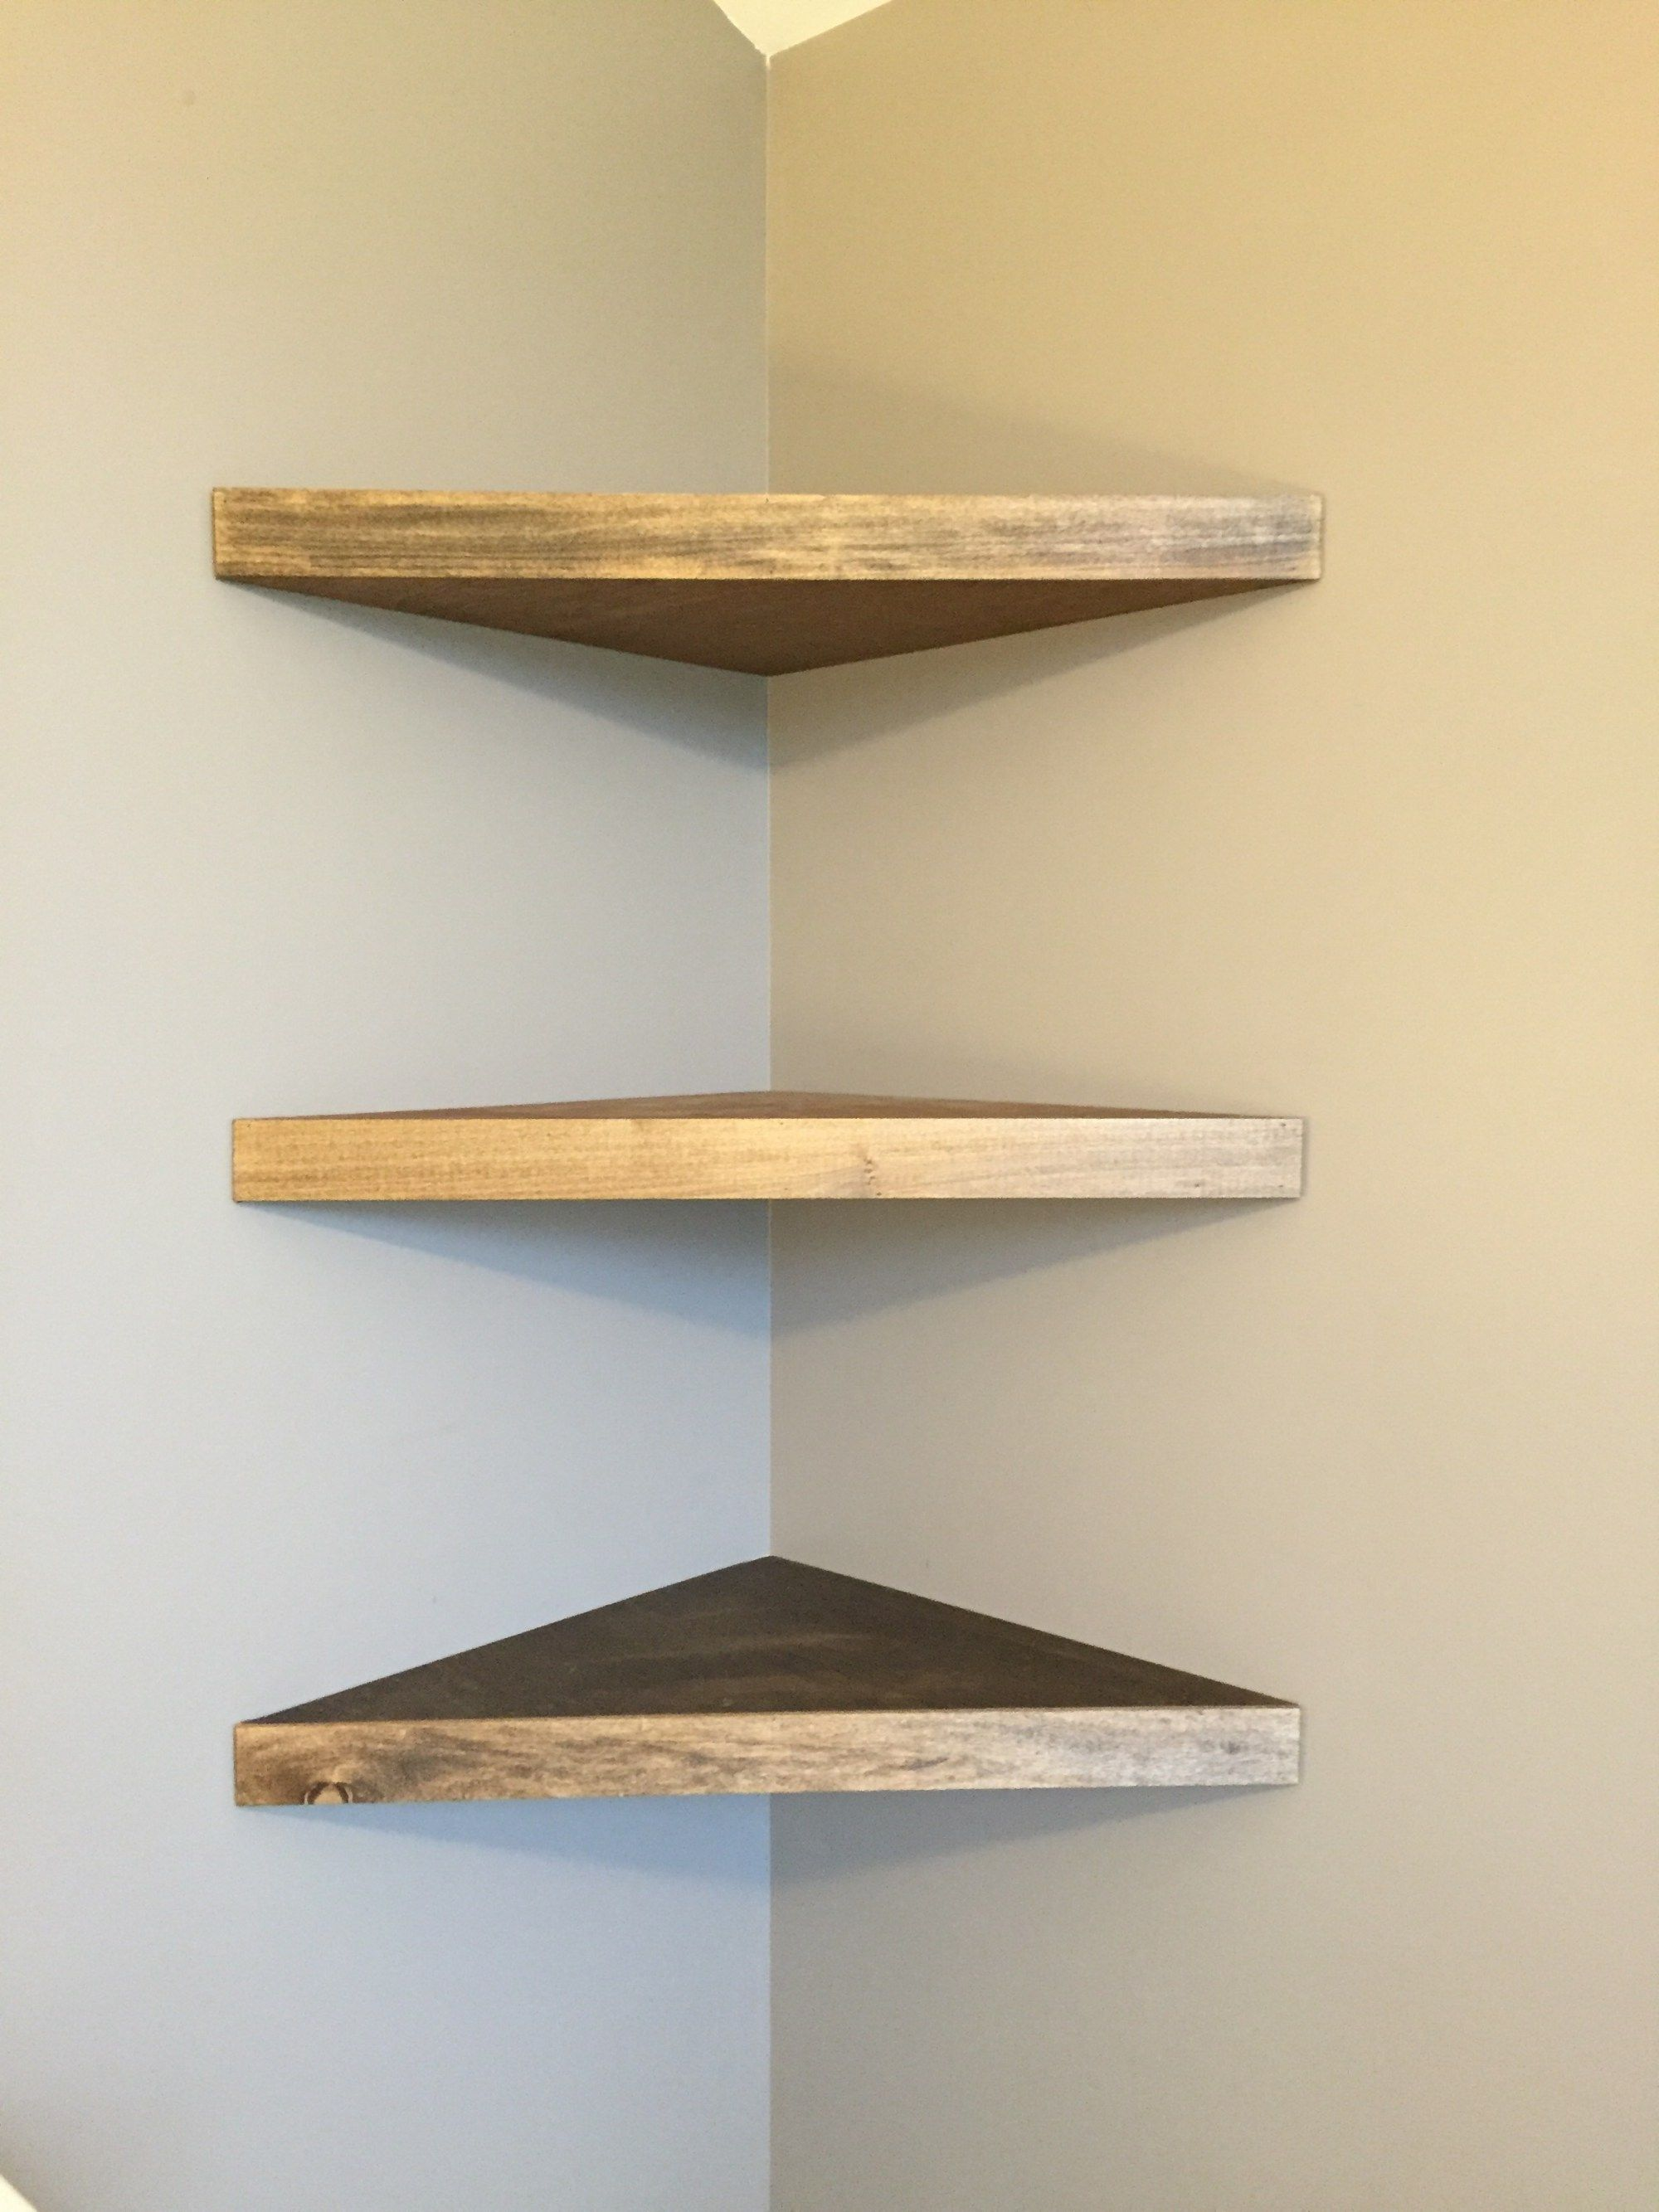 diy floating corner shelves bathroom reclaimed wood shelf fixed library book rack dimensions large brackets storage bench with coat what type underlayment for vinyl flooring